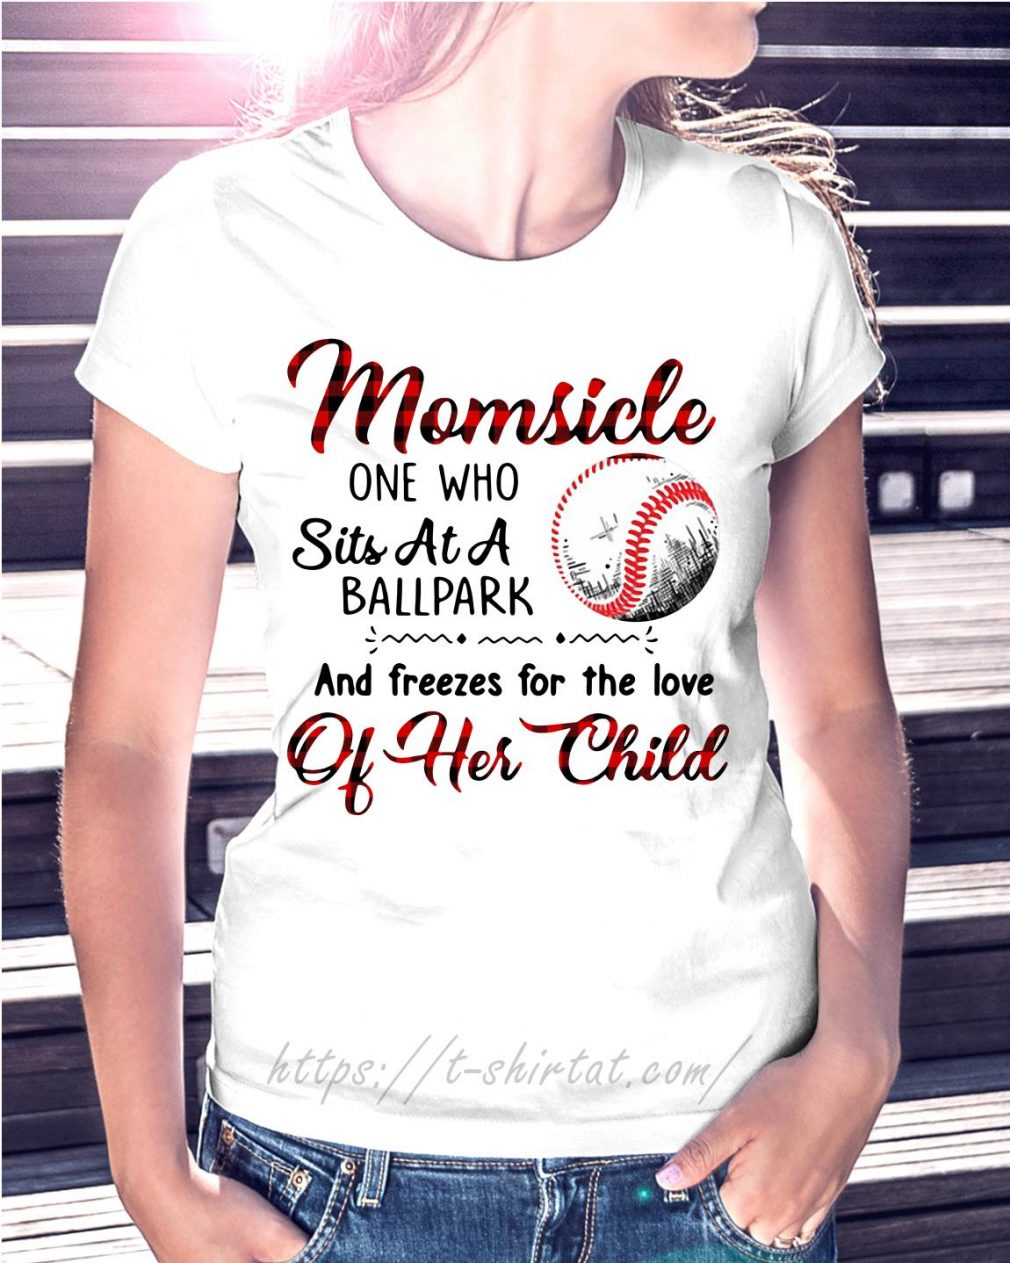 Momsicle one who sits at a ballpark and freezes for the love of her child